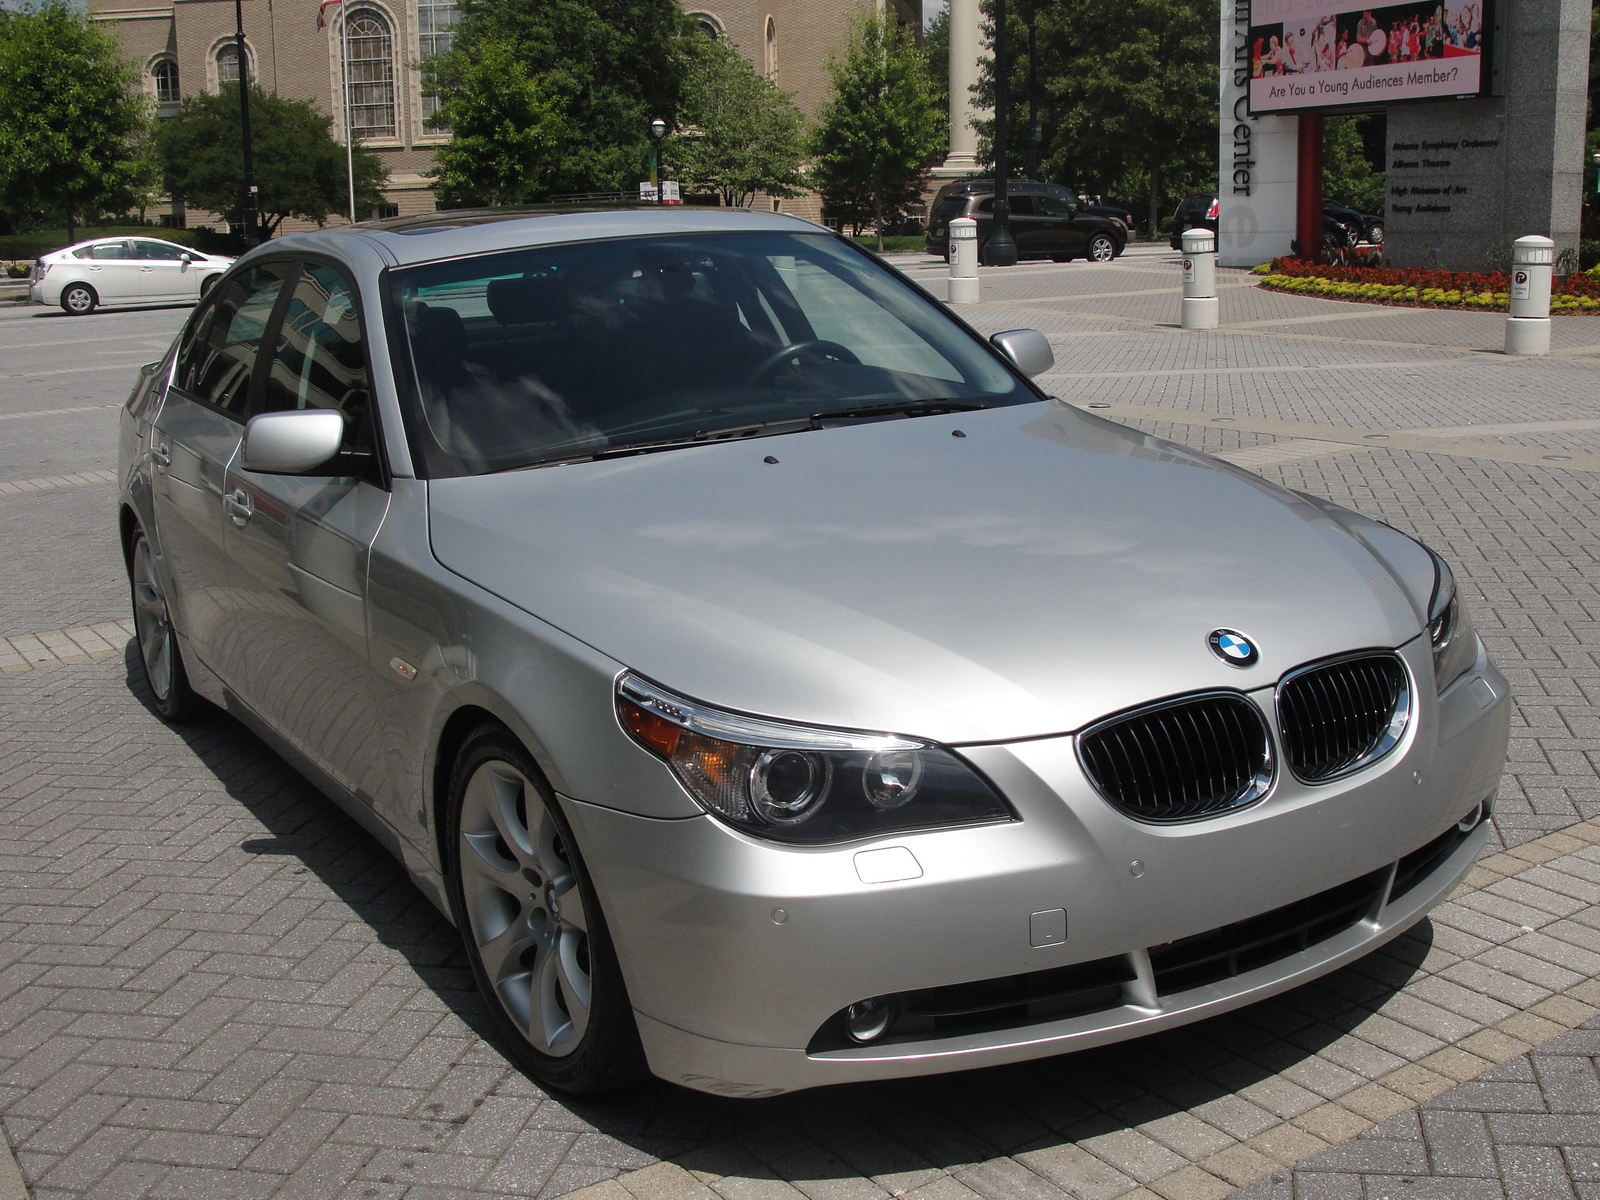 BMW 5 series 550i 2007 photo - 8